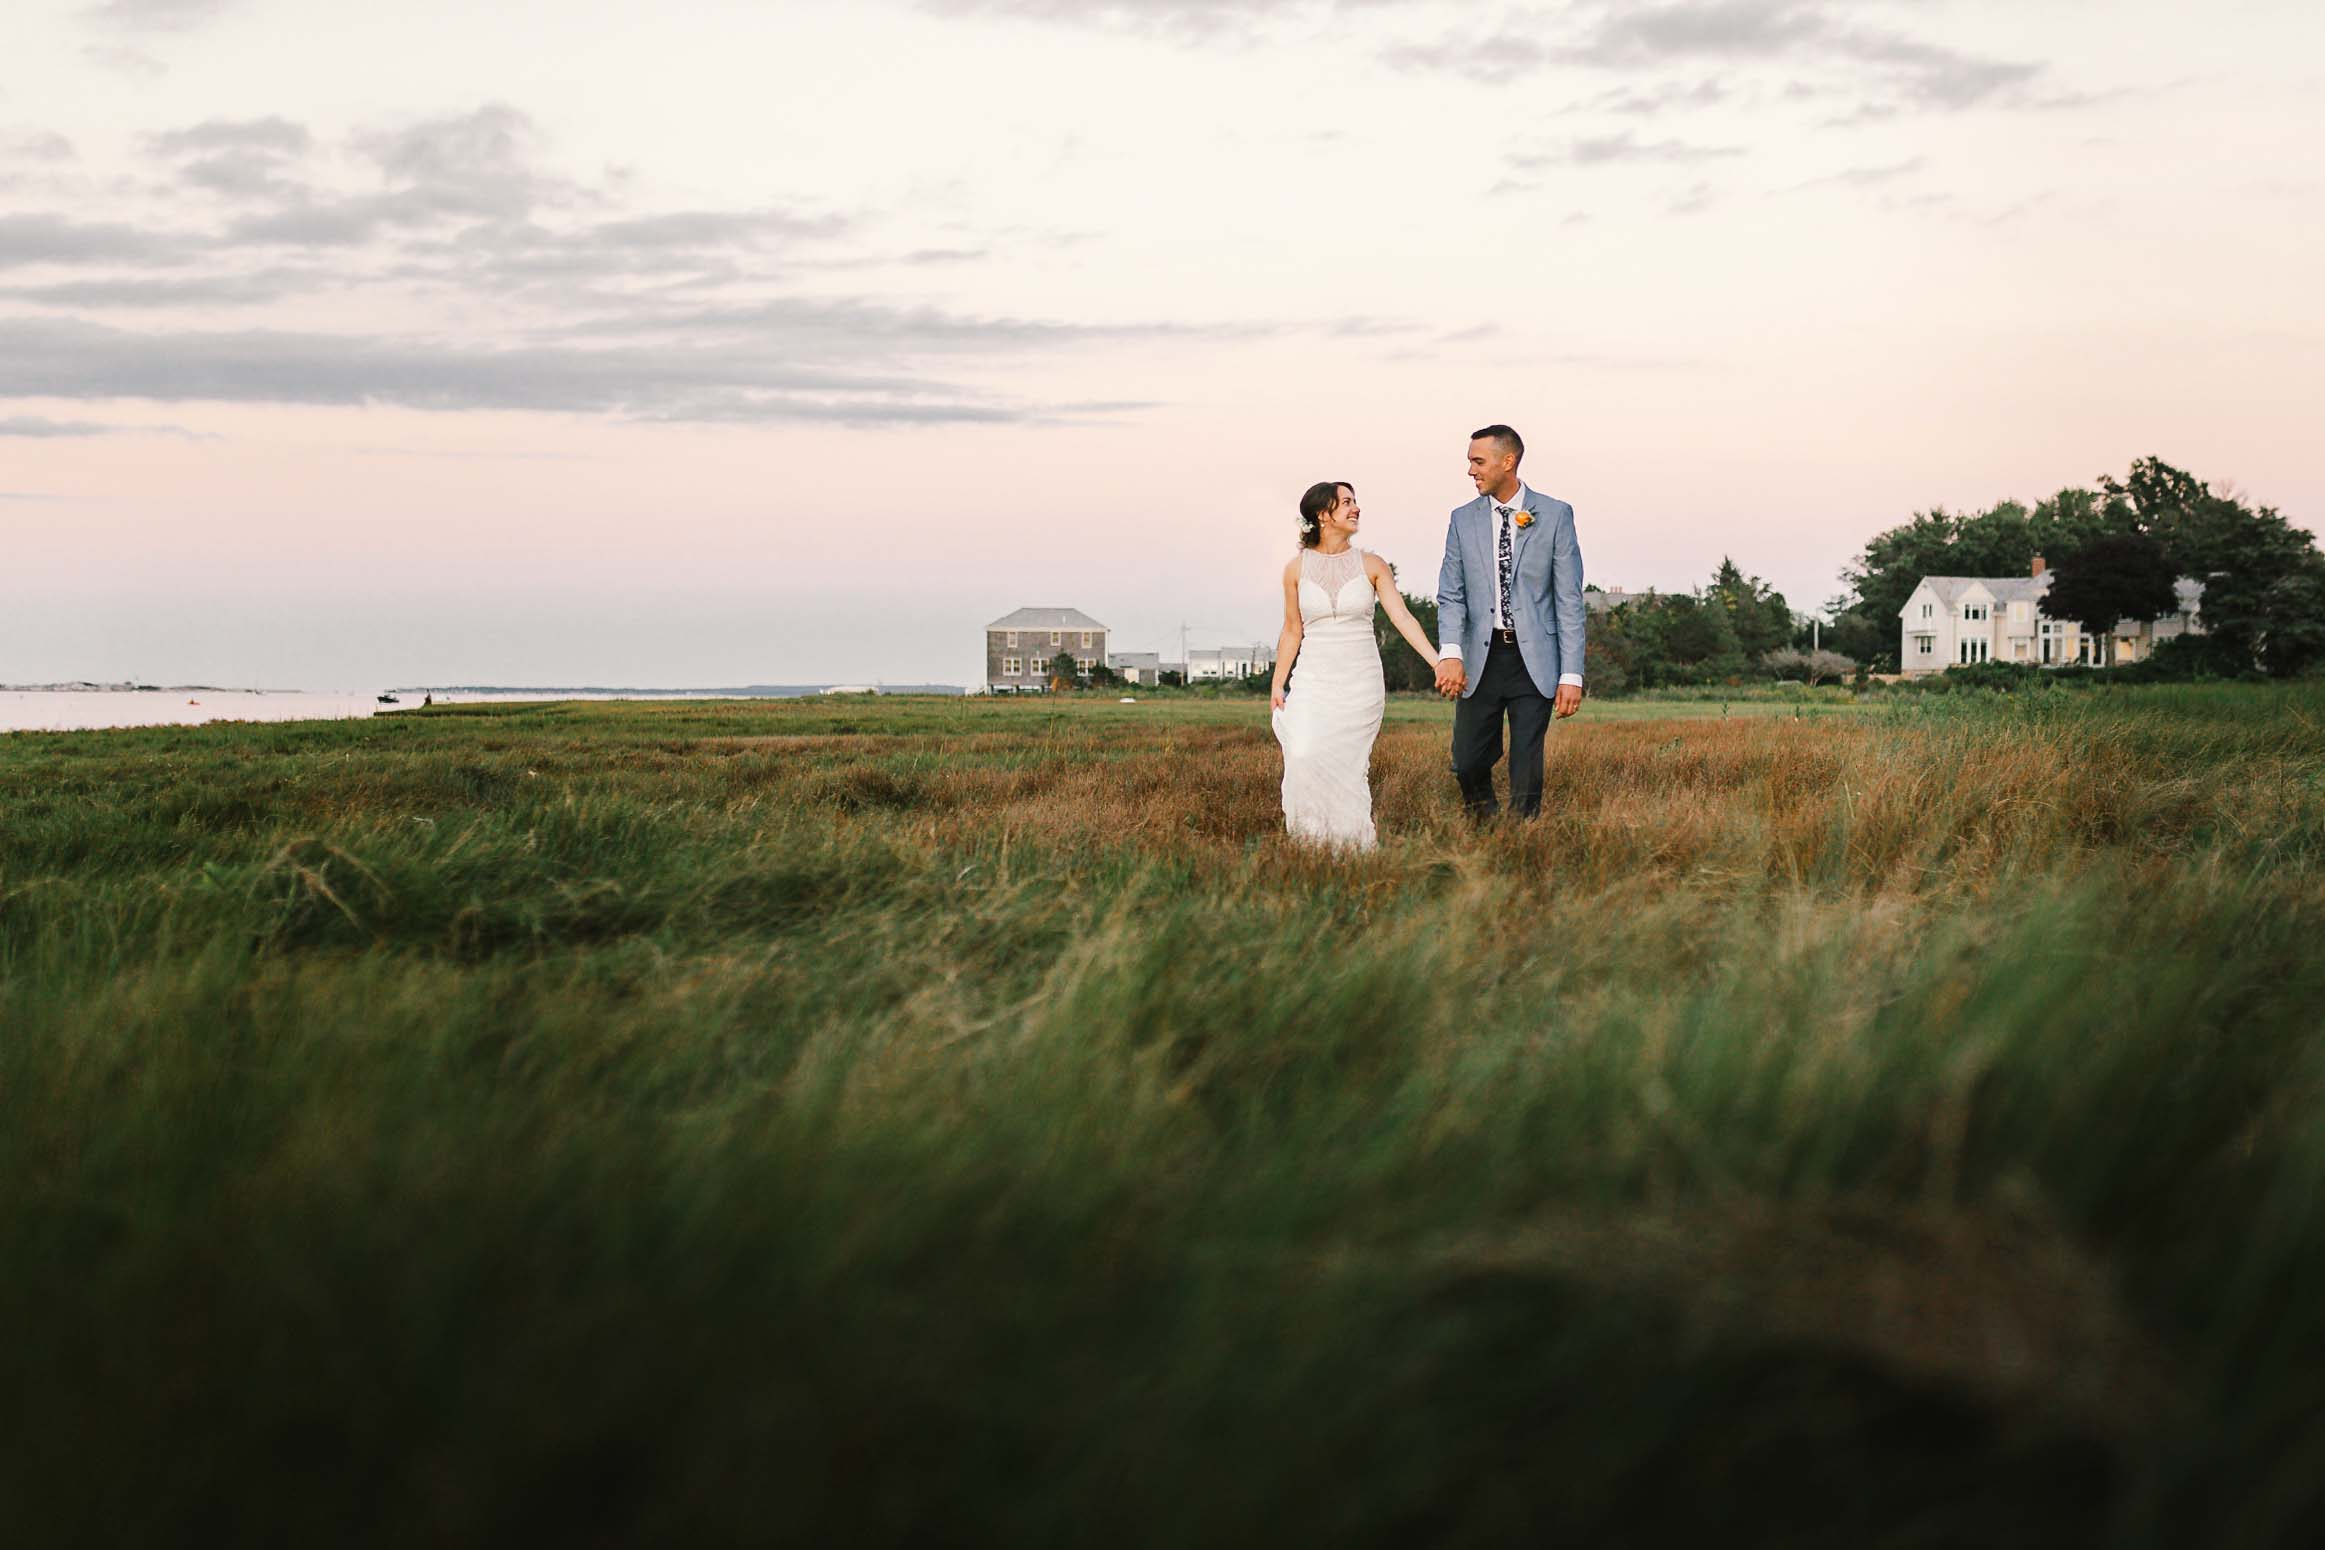 Backyard Cape Cod Wedding - Cape Cod, MA